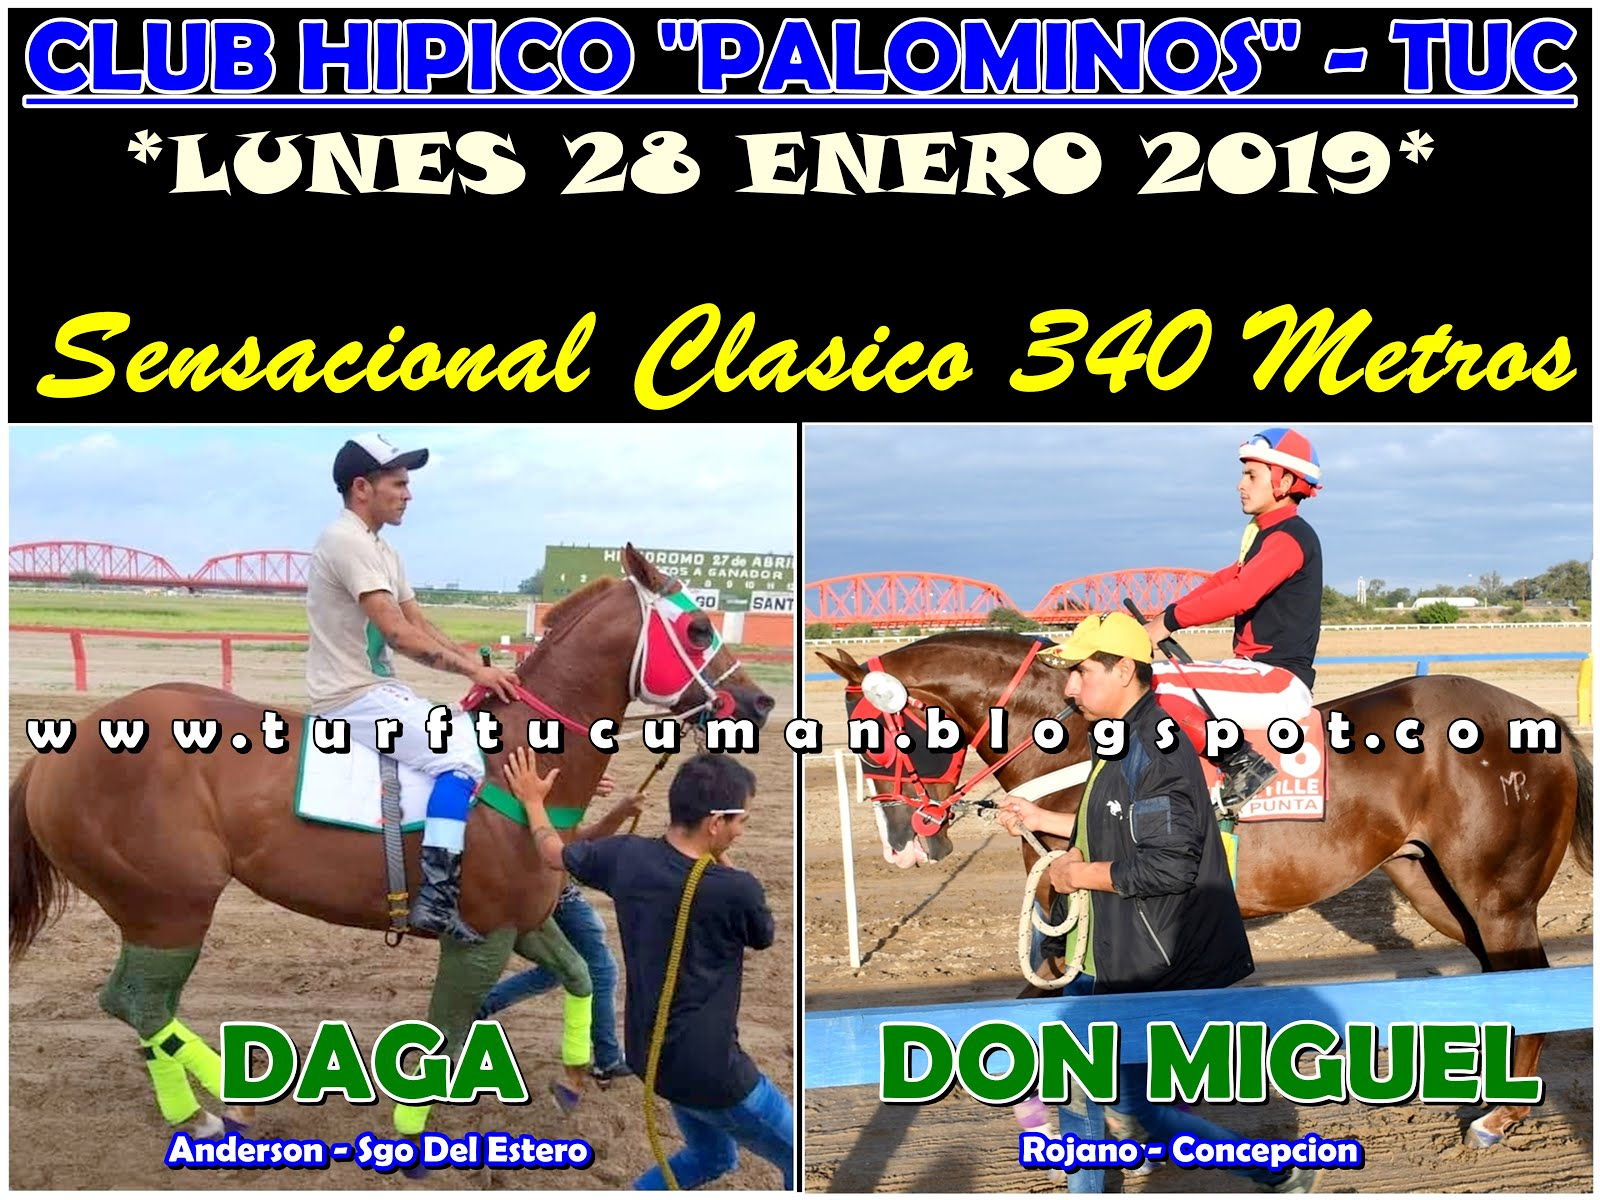 DAGA VS DON MIGUEL